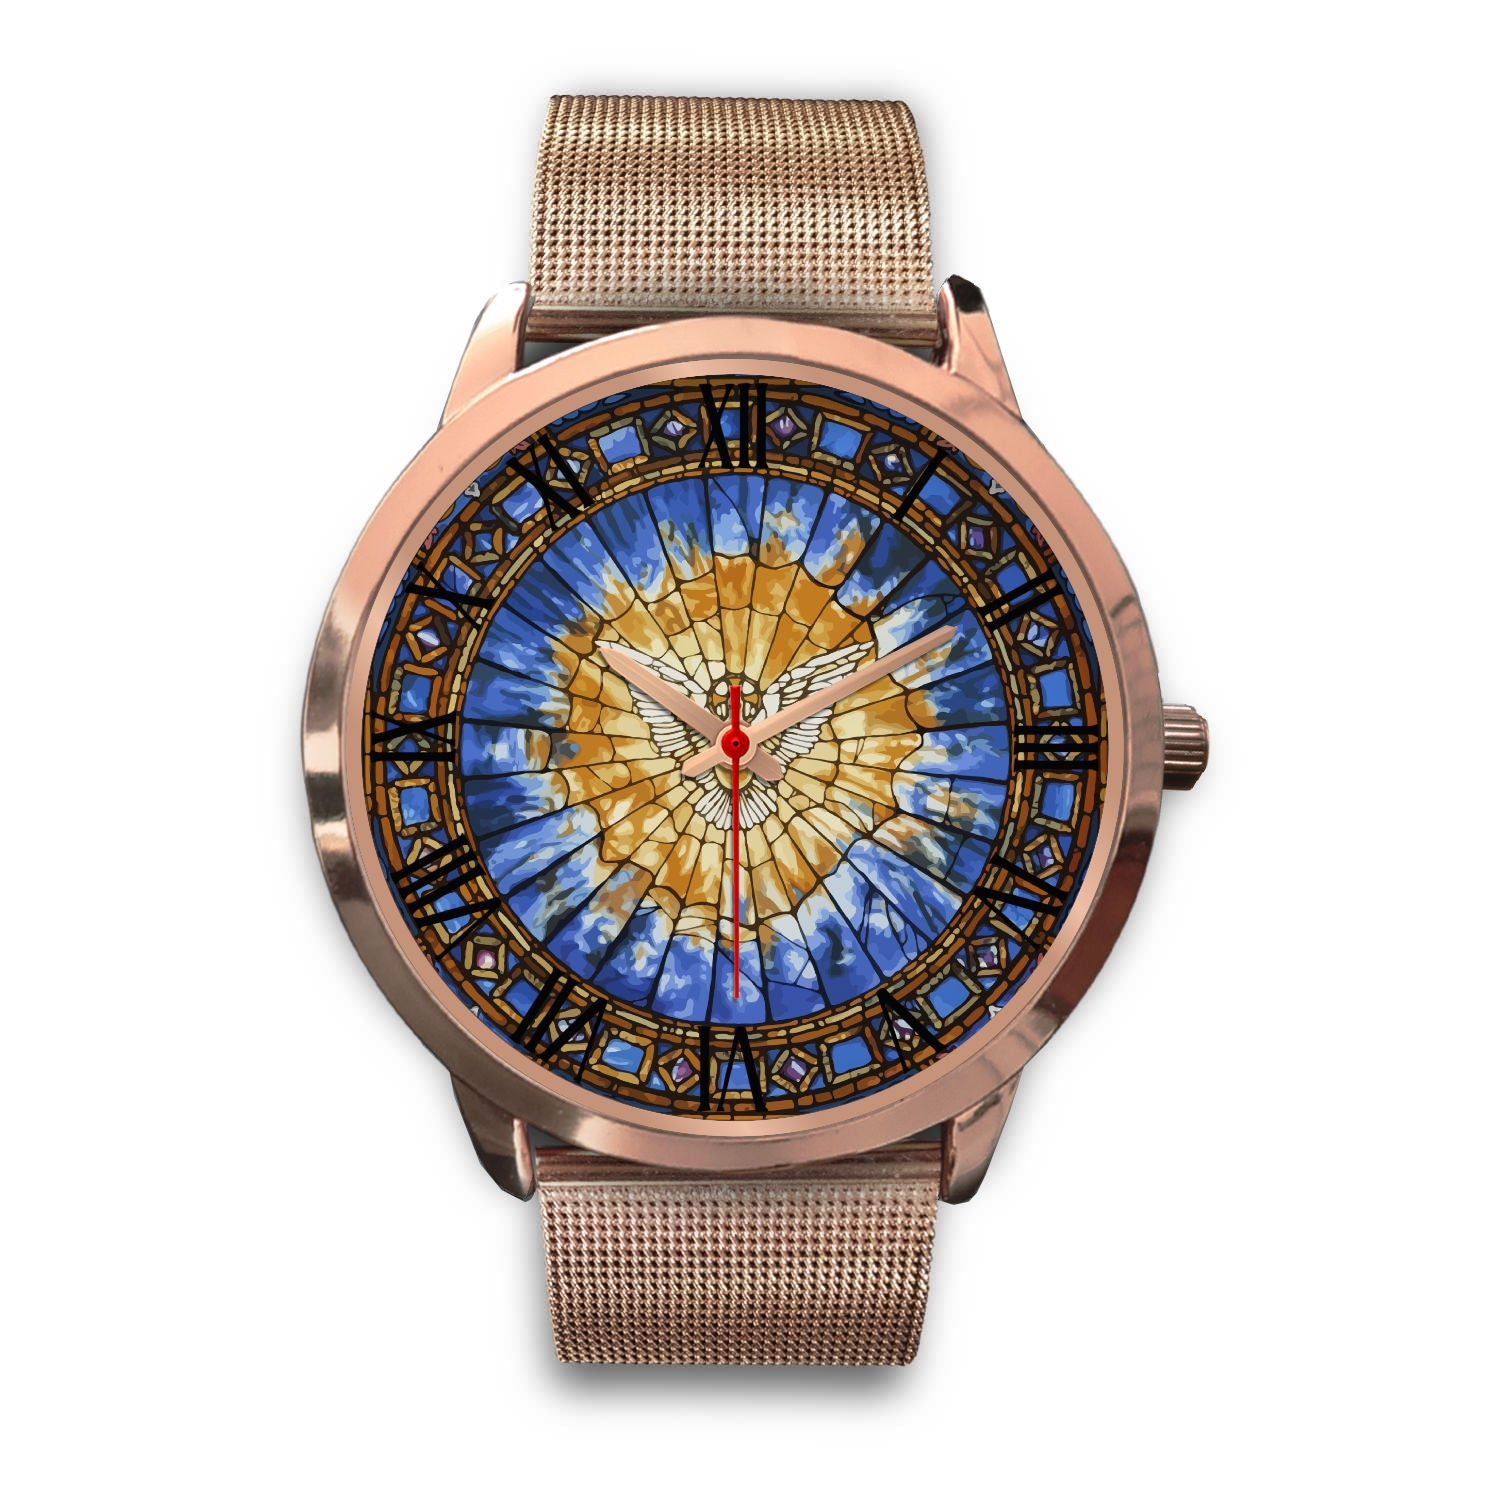 VIRA Awesome Rose Gold Watch For Jesus Lovers